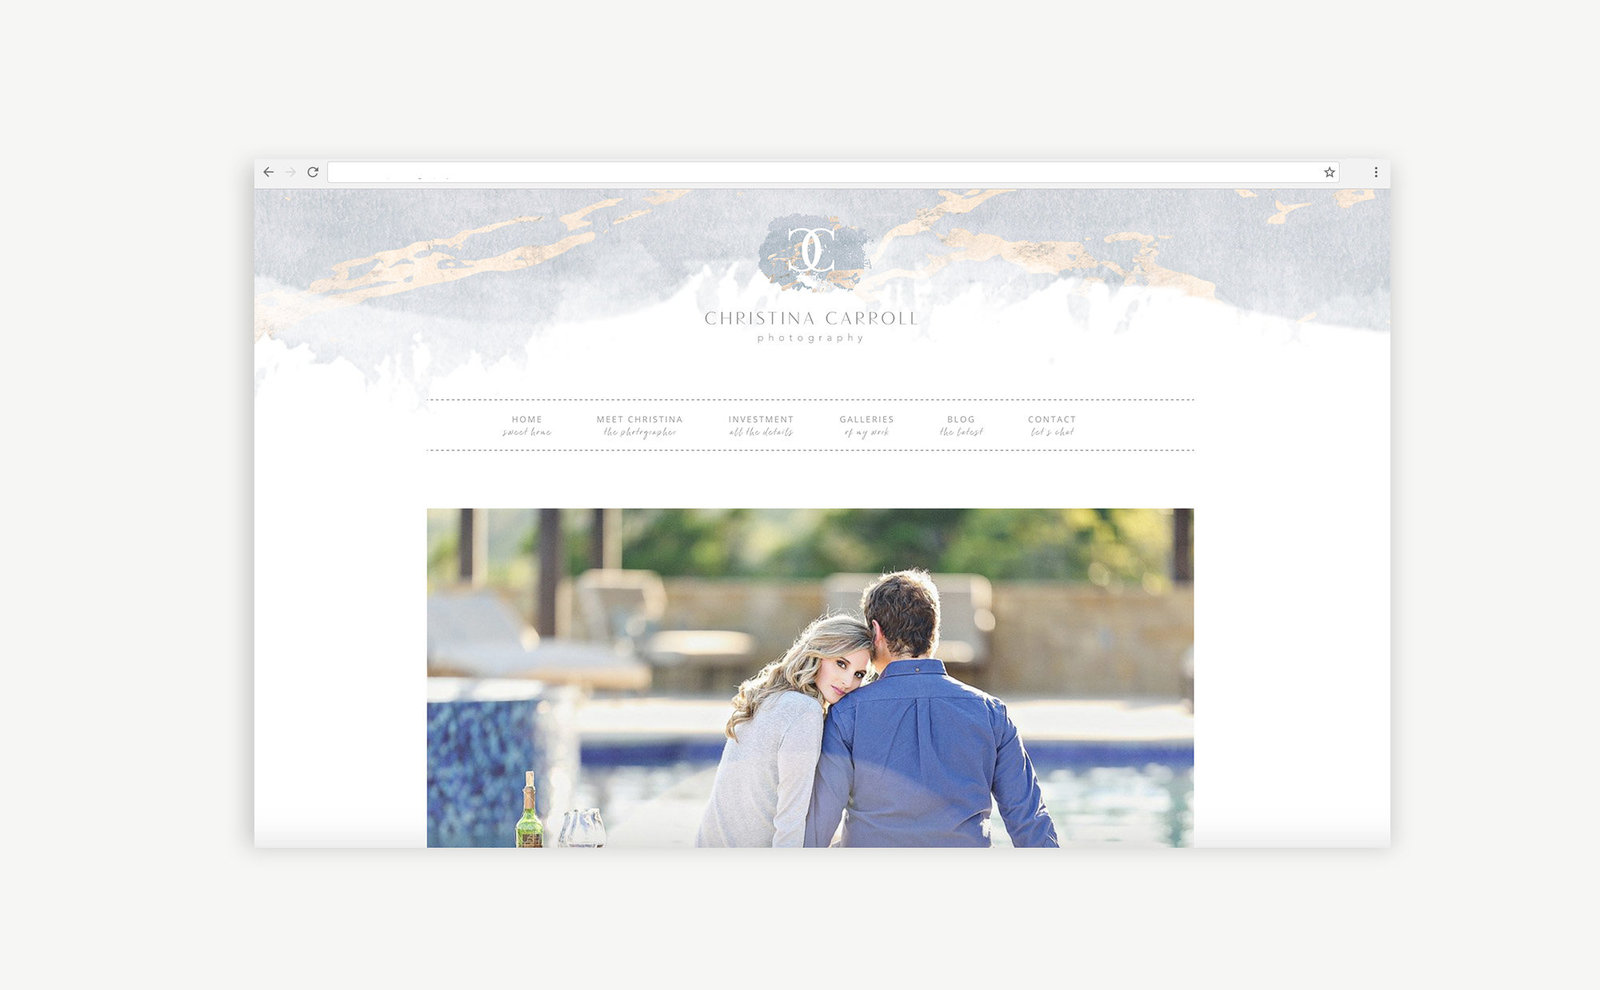 branding-for-photographers-web-design-christina-carroll-01